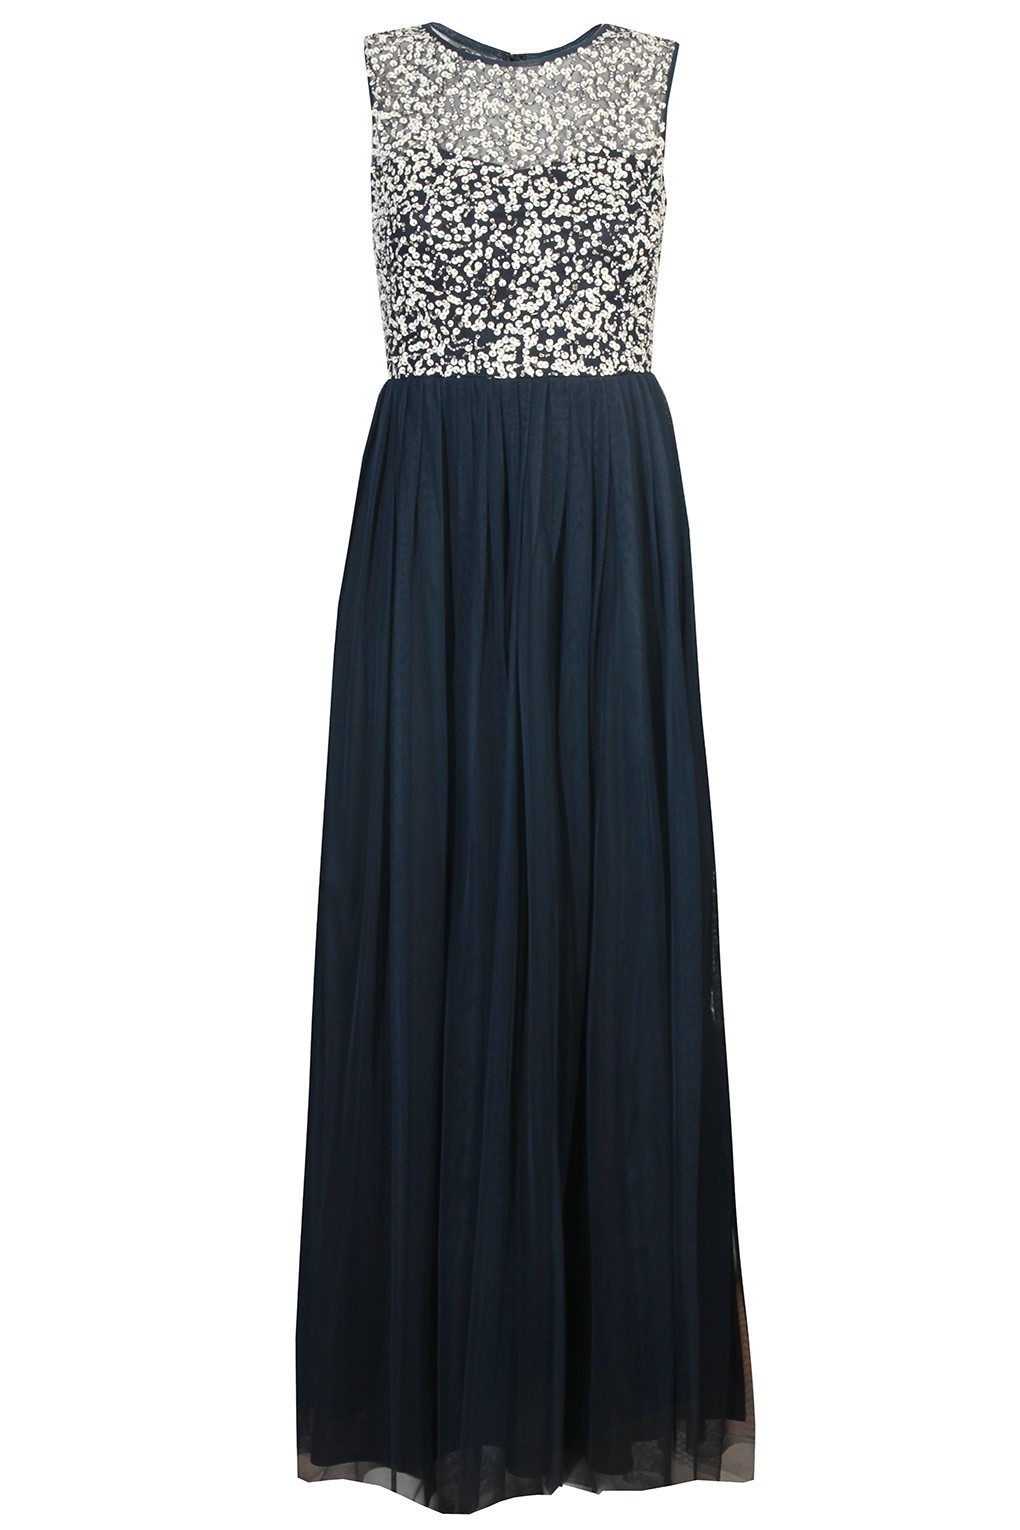 Lace beads belle navy maxi dress party dresses for Navy maxi dresses for weddings